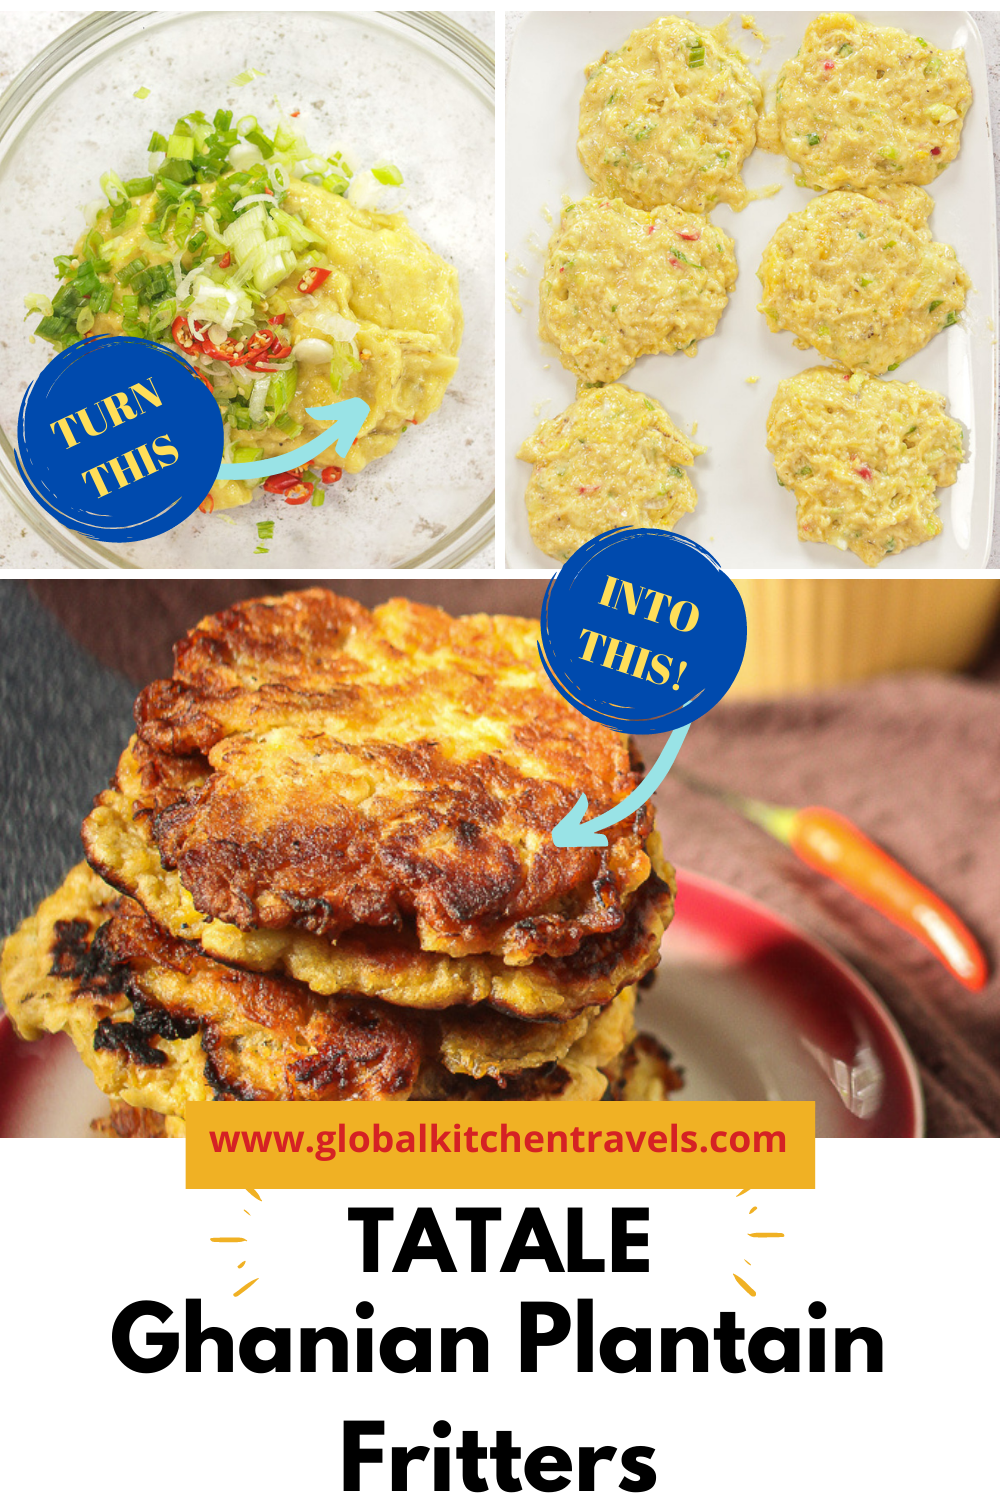 step by step images to make plantain pancakes with text